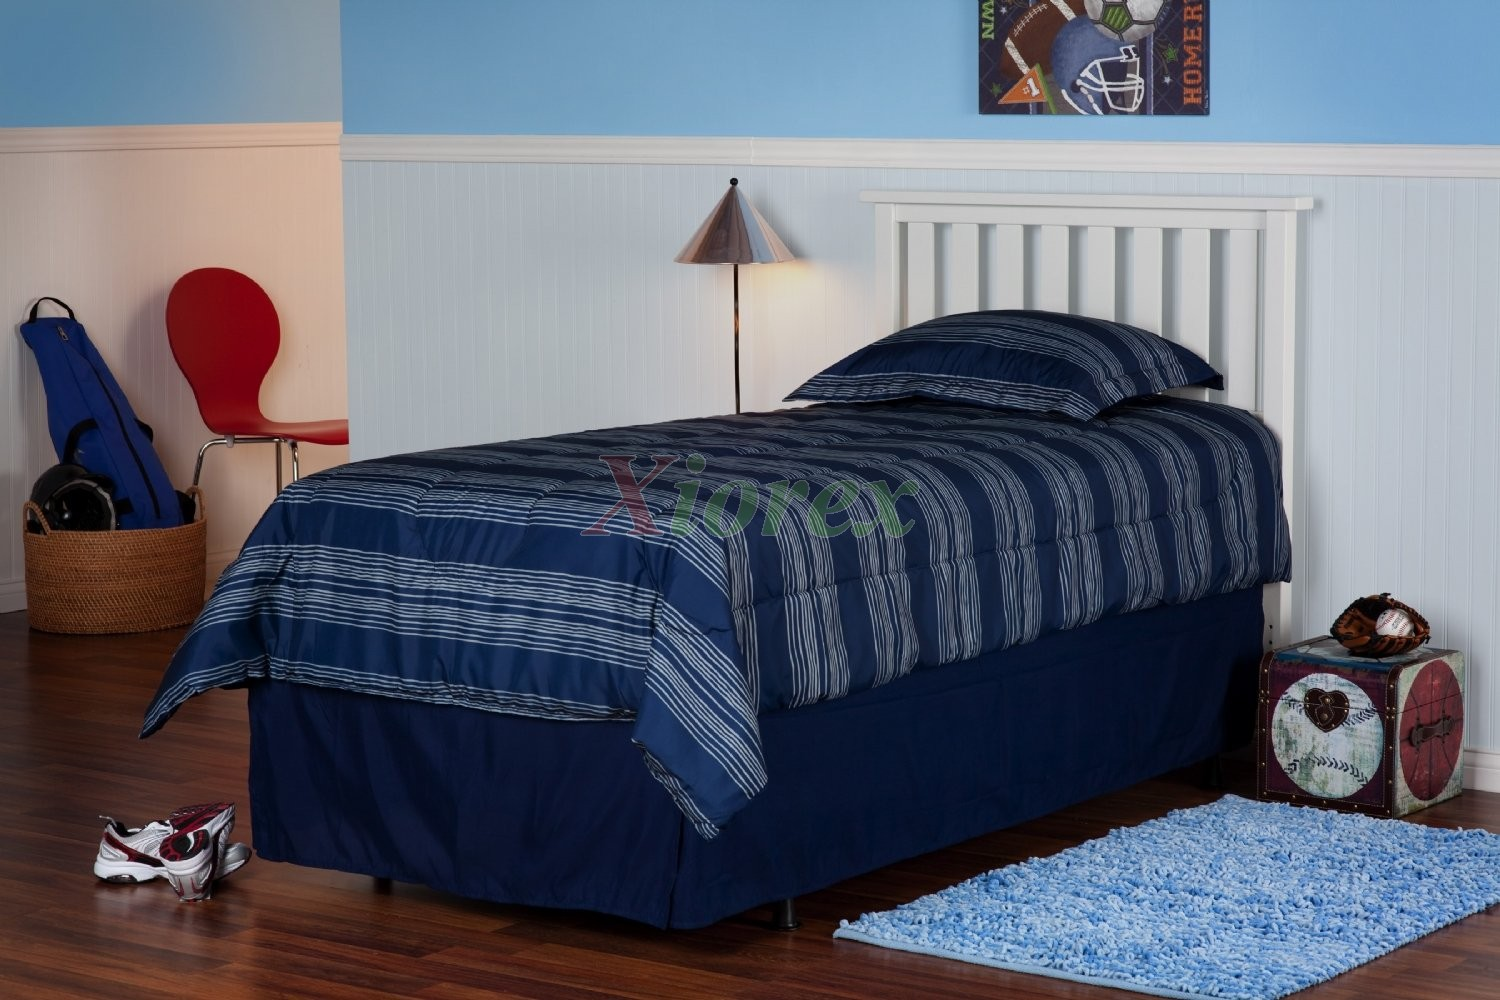 Belmont Headboard Slatted Wood For Twin Full Queen Size Beds